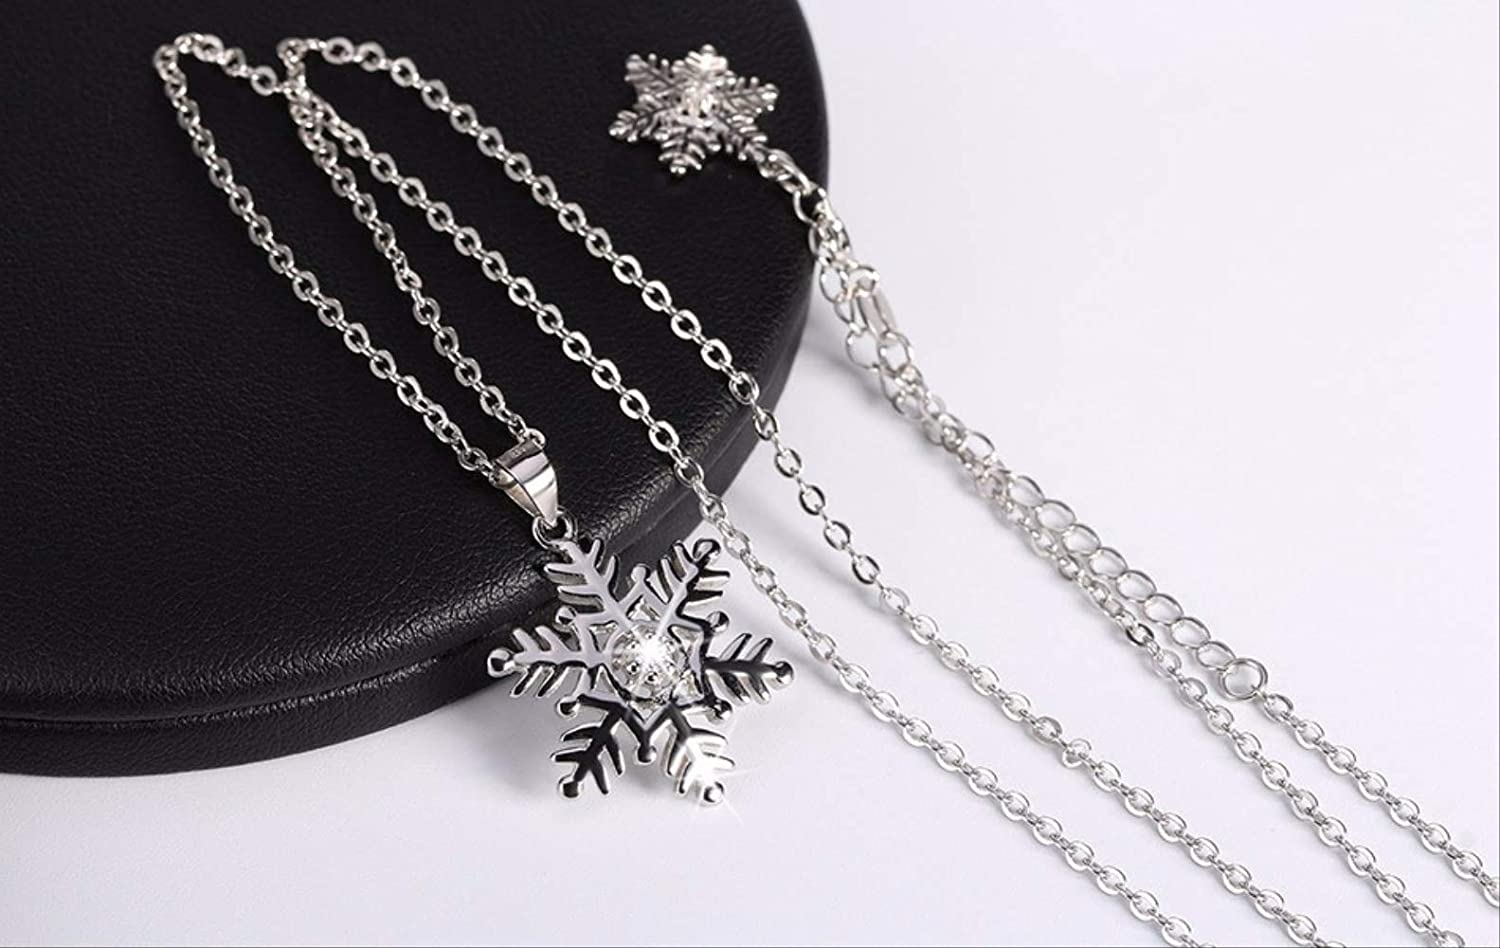 Haiyuan Bracelet Genuine Silver RWowflake Pendant Necklaces for Men//Women 925 Sterling Silver Necklace Jewelry Lovers Gift RW07